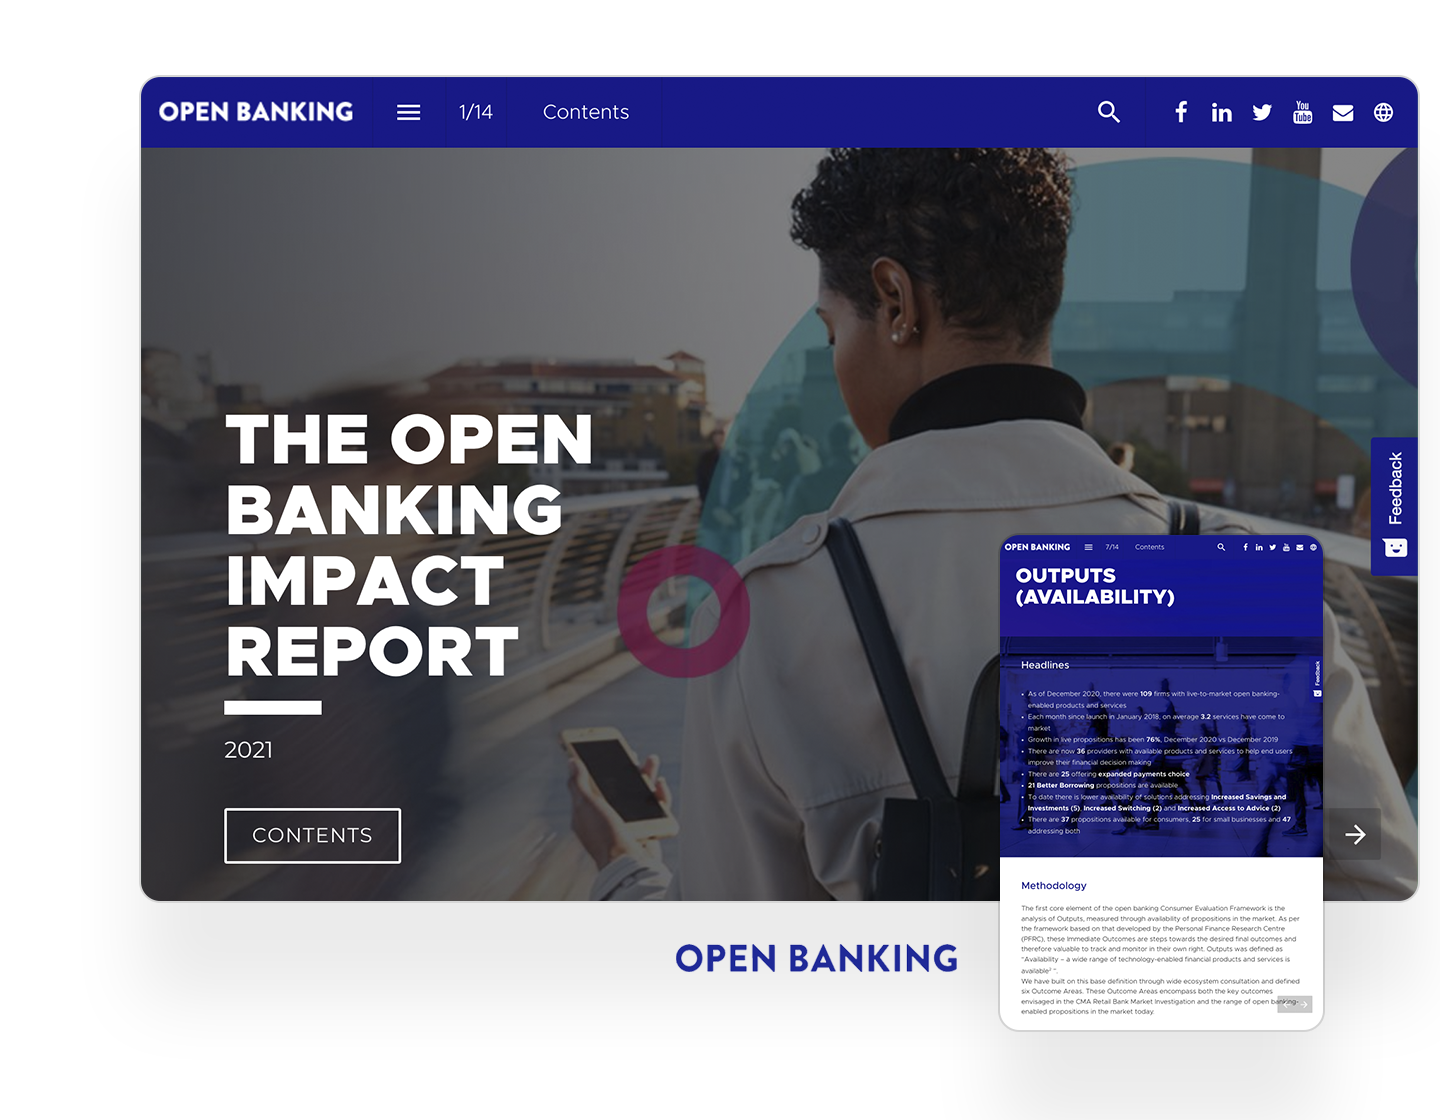 open banking impact report example